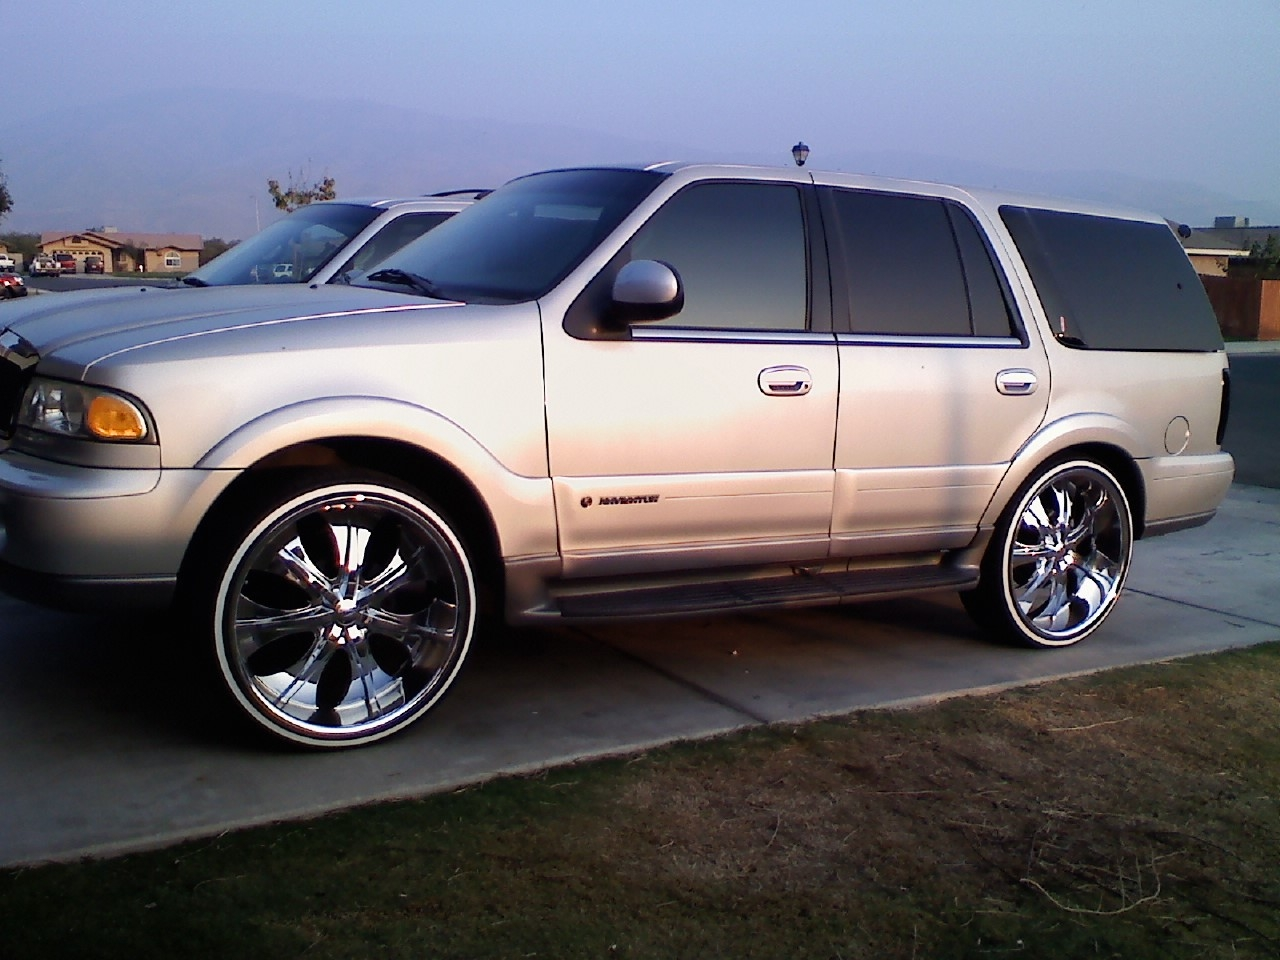 Jasong7 2001 Lincoln Navigator Specs Photos Modification Info At Cardomain